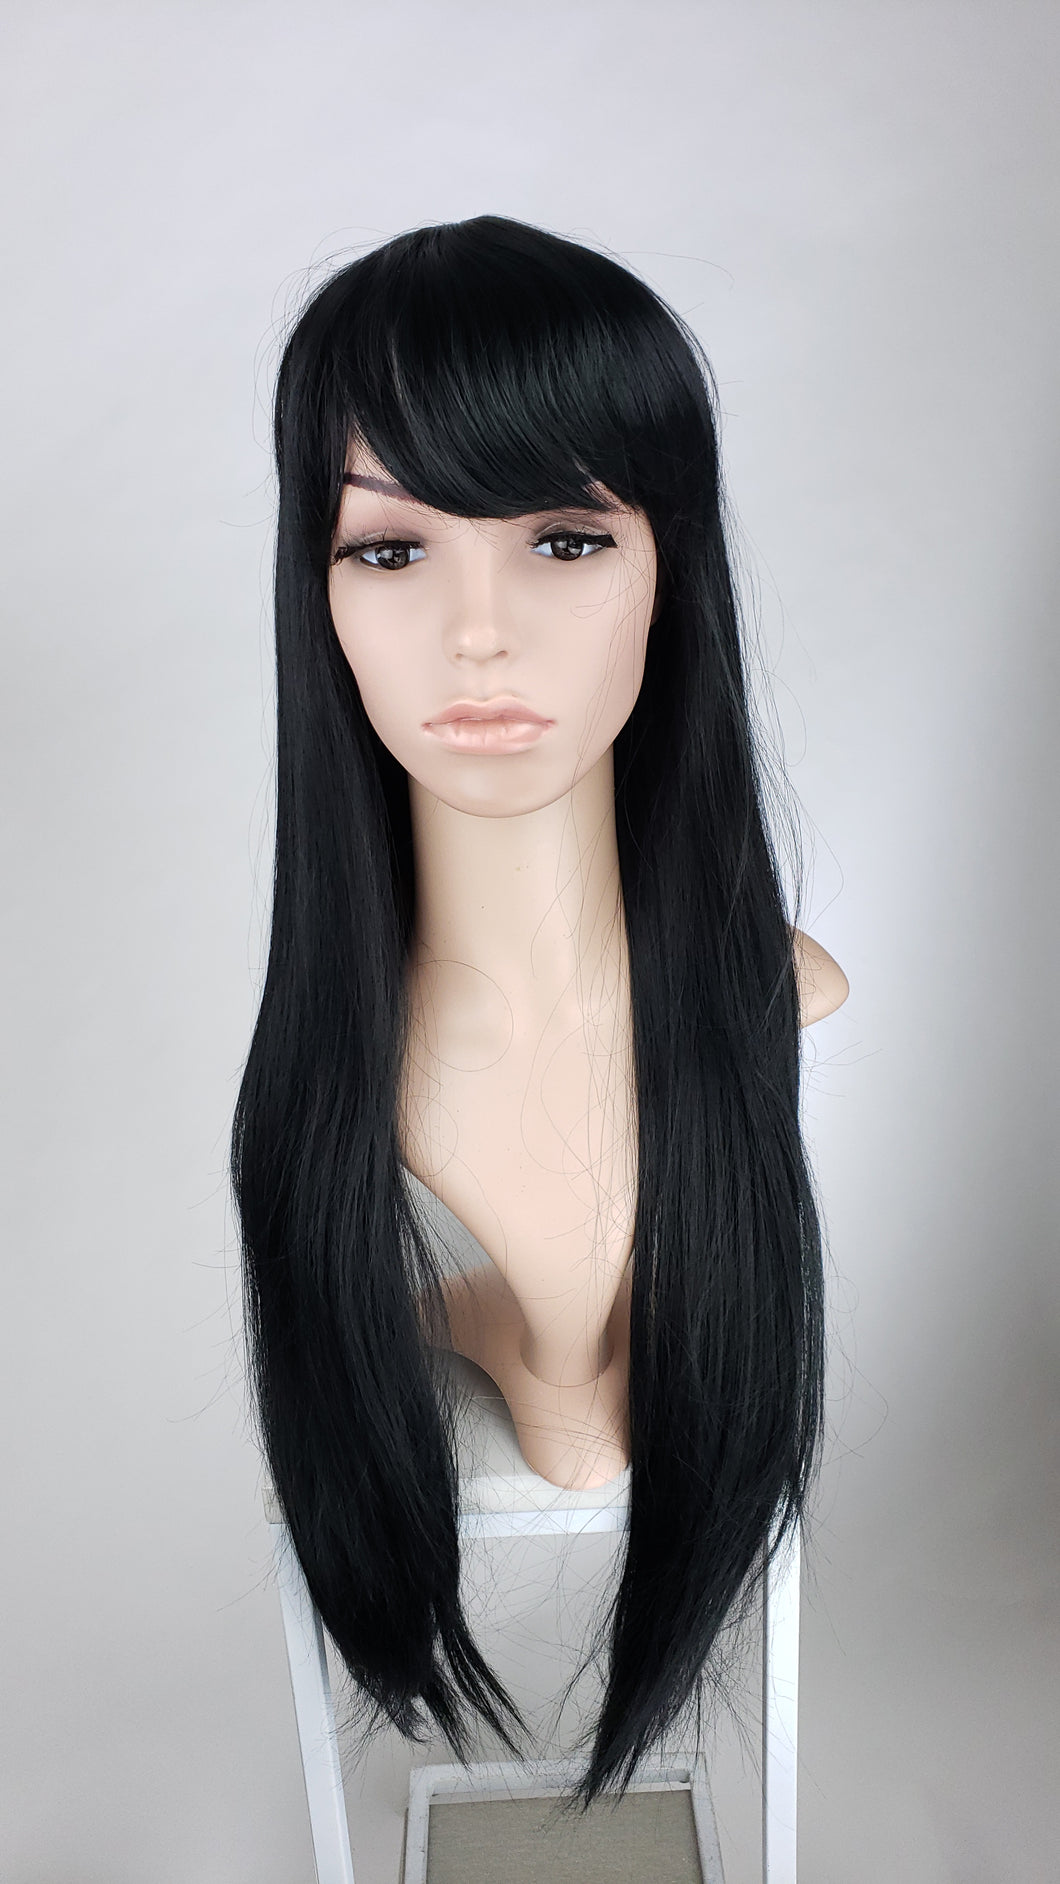 Pose Wigs Black Long Straight with Bangs Fashion Wig HSAPR1